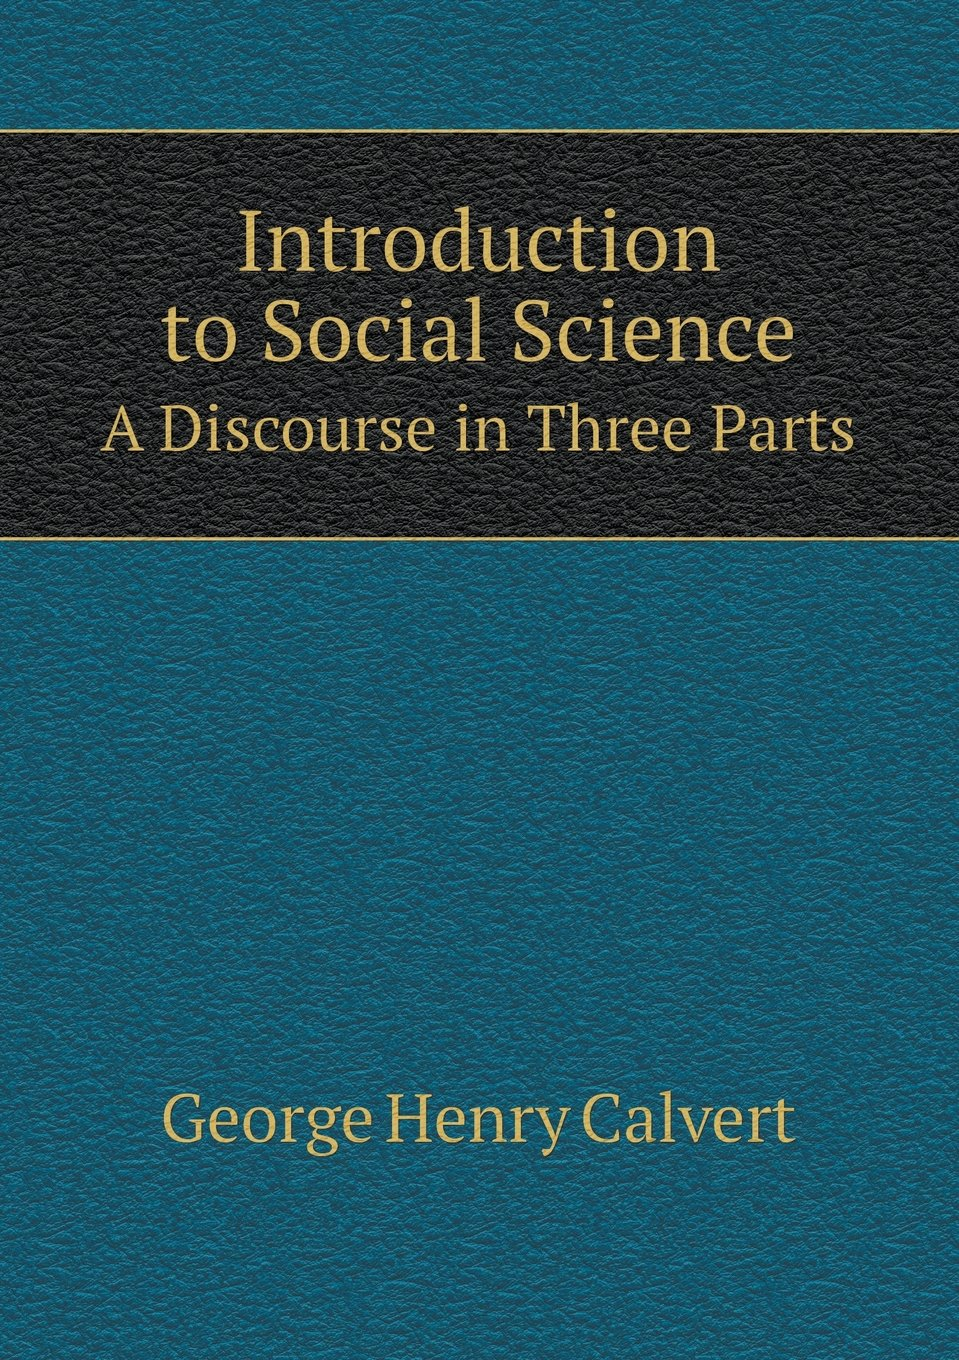 Read Online Introduction to Social Science A Discourse in Three Parts PDF